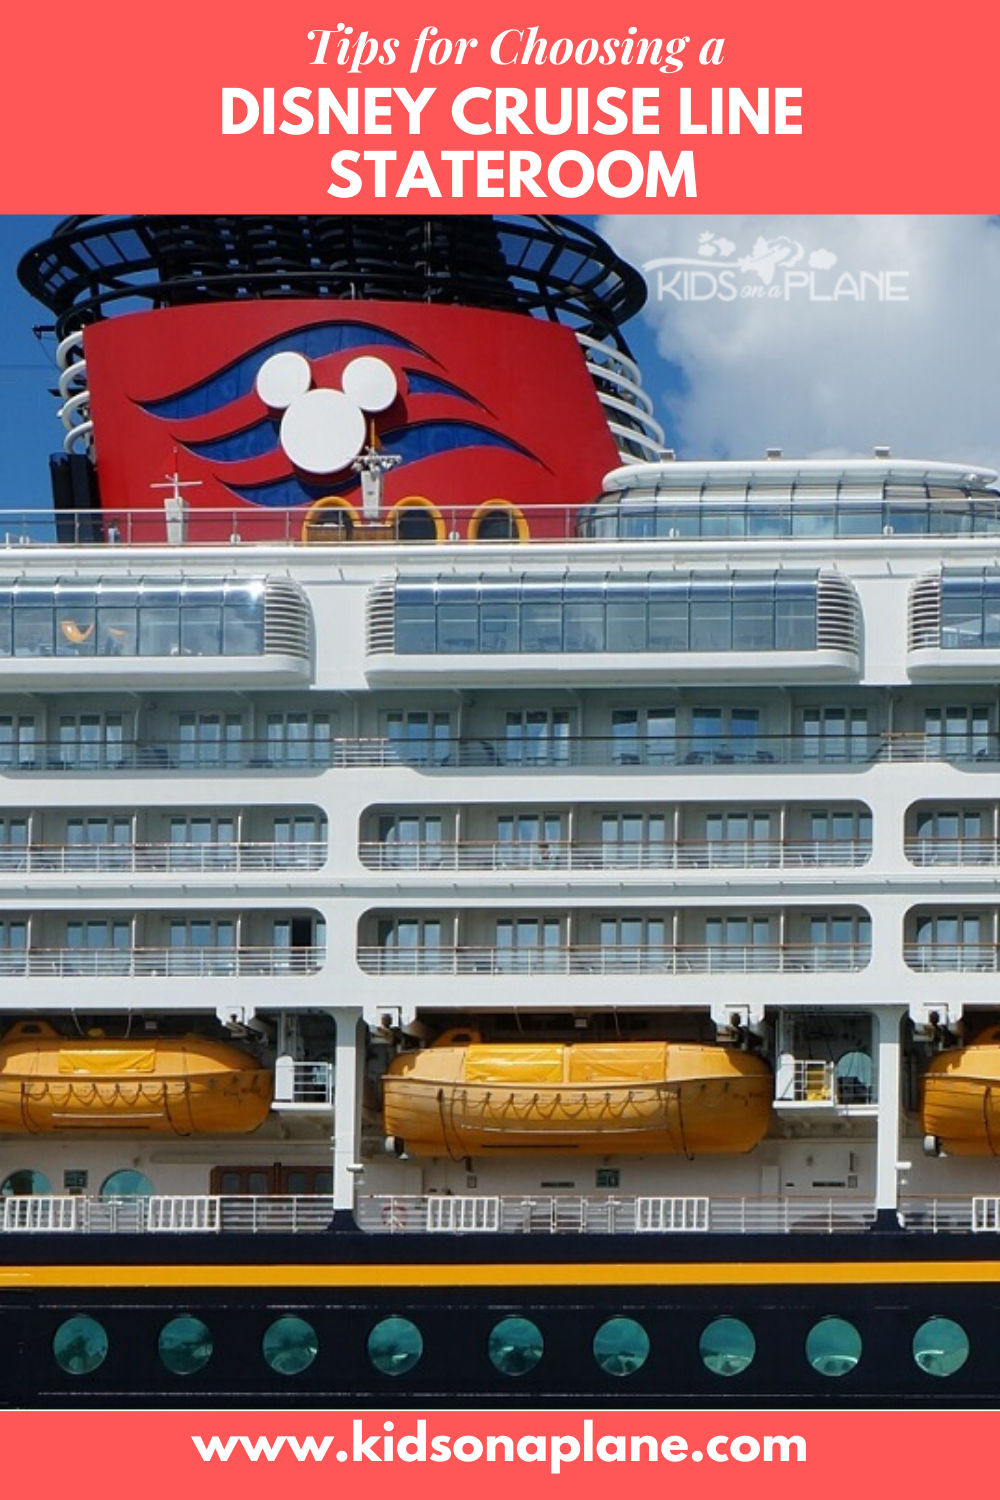 Tips for Choosing a Disney Cruise Line Stateroom Cabin - Learn about the different categories and discounts